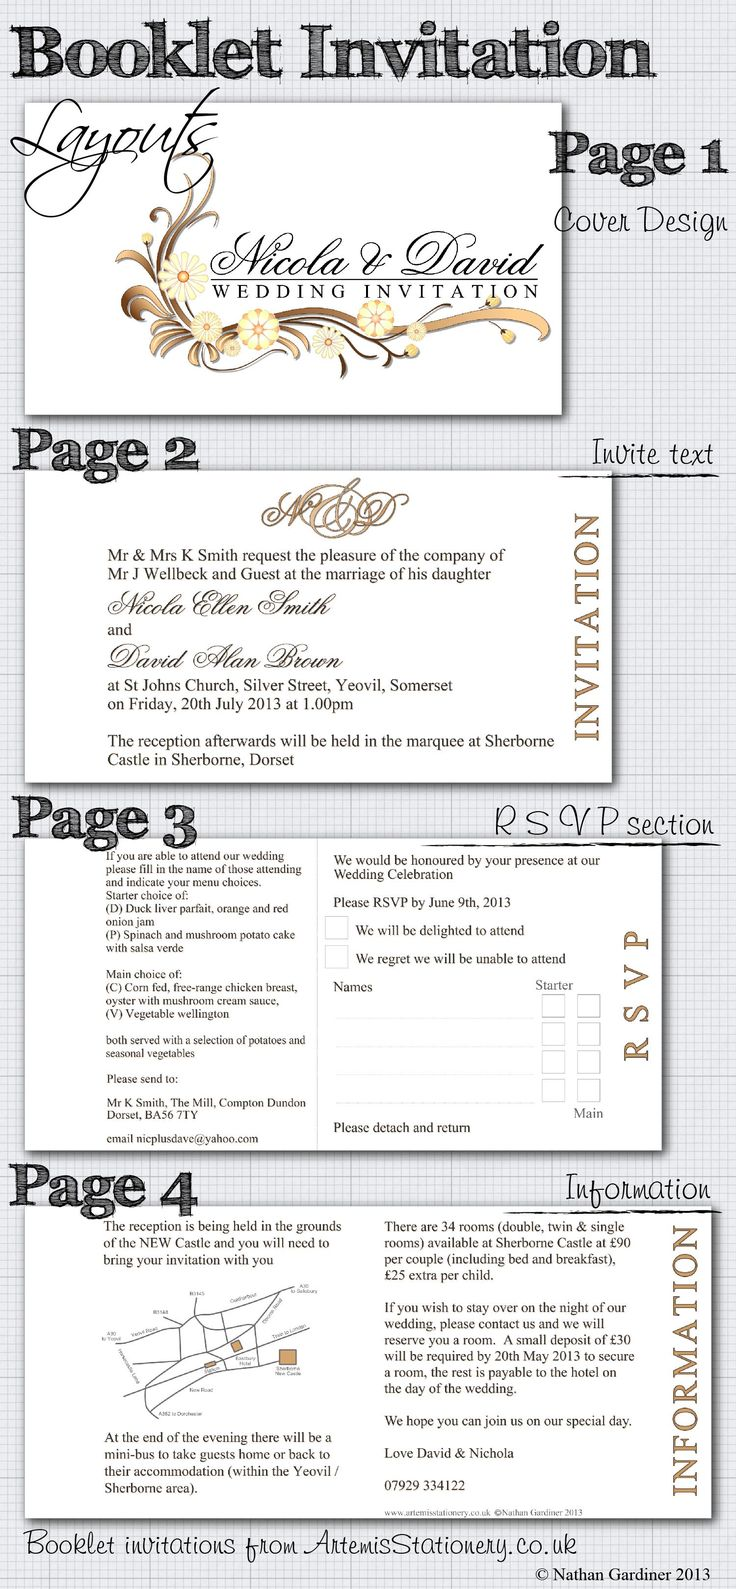 Artemis Stationery suggested booklet wedding invitation layout - stationery range shown is Sienna